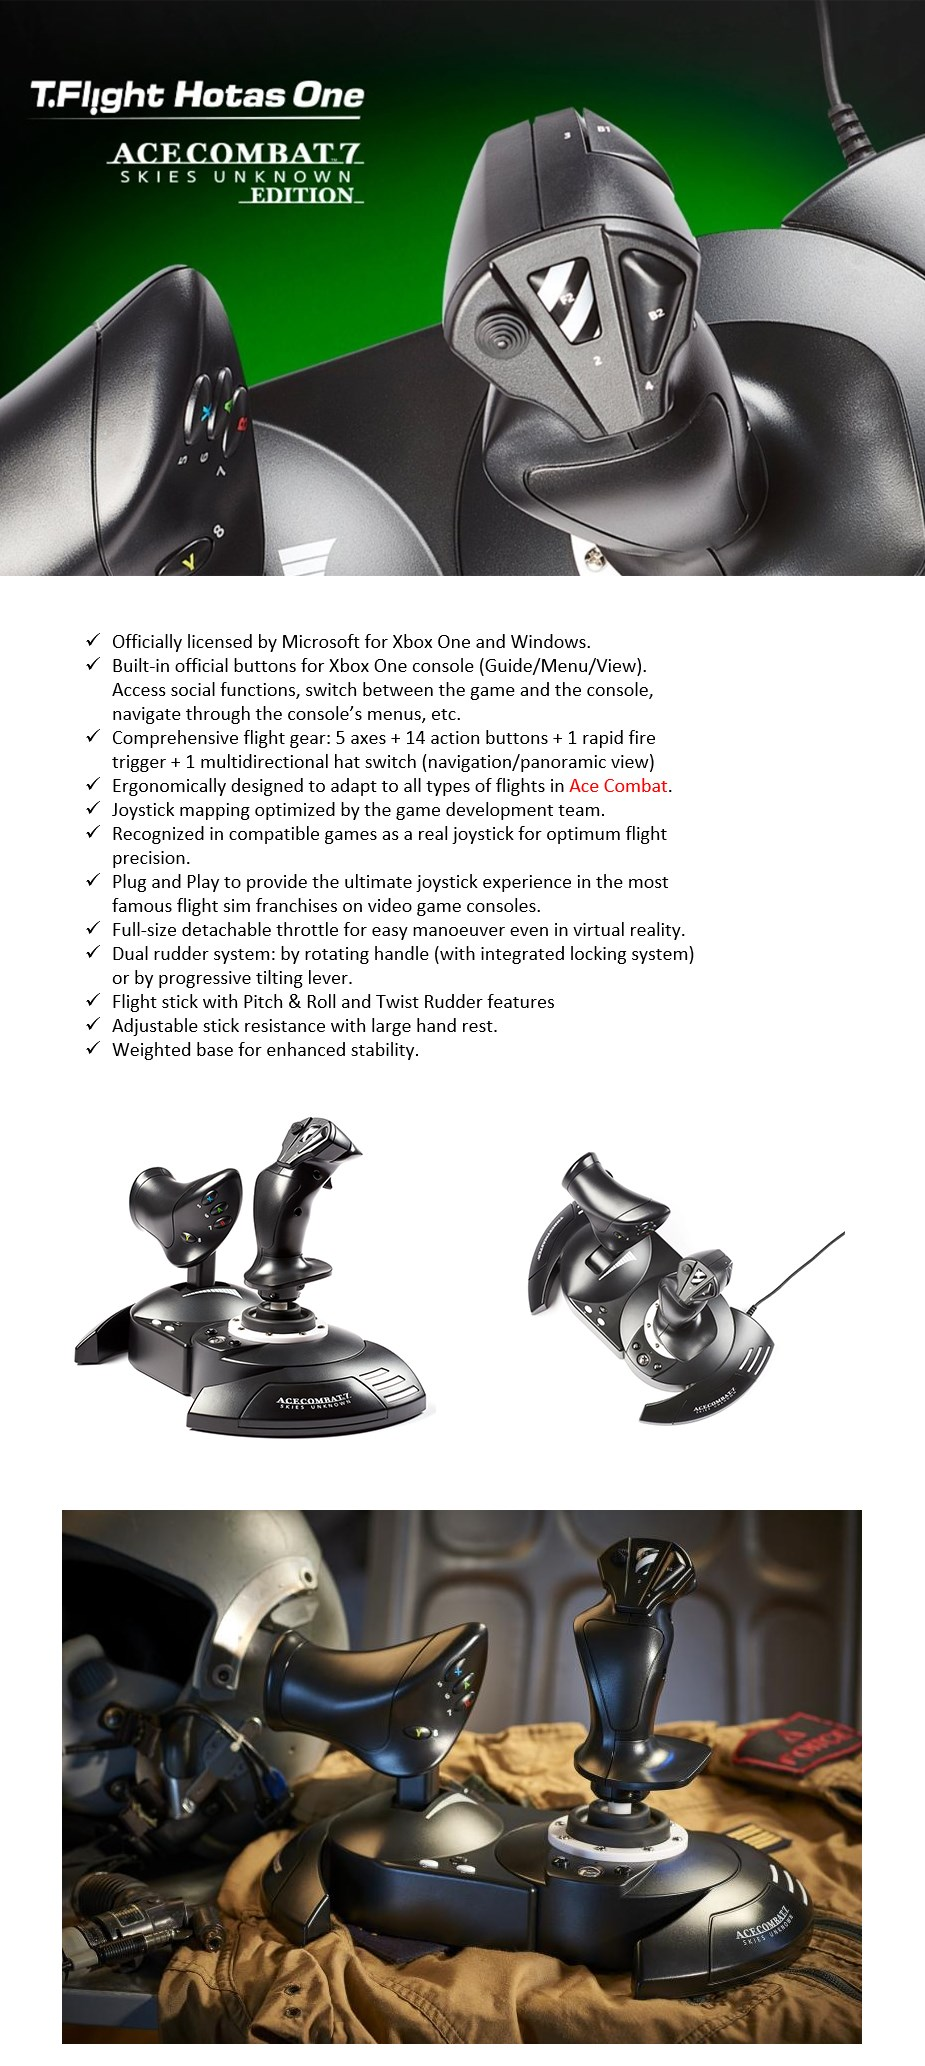 Thrustmaster T-Flight Hotas One Ace Combat 7 Edition For PC & Xbox One - Desktop Overview 1